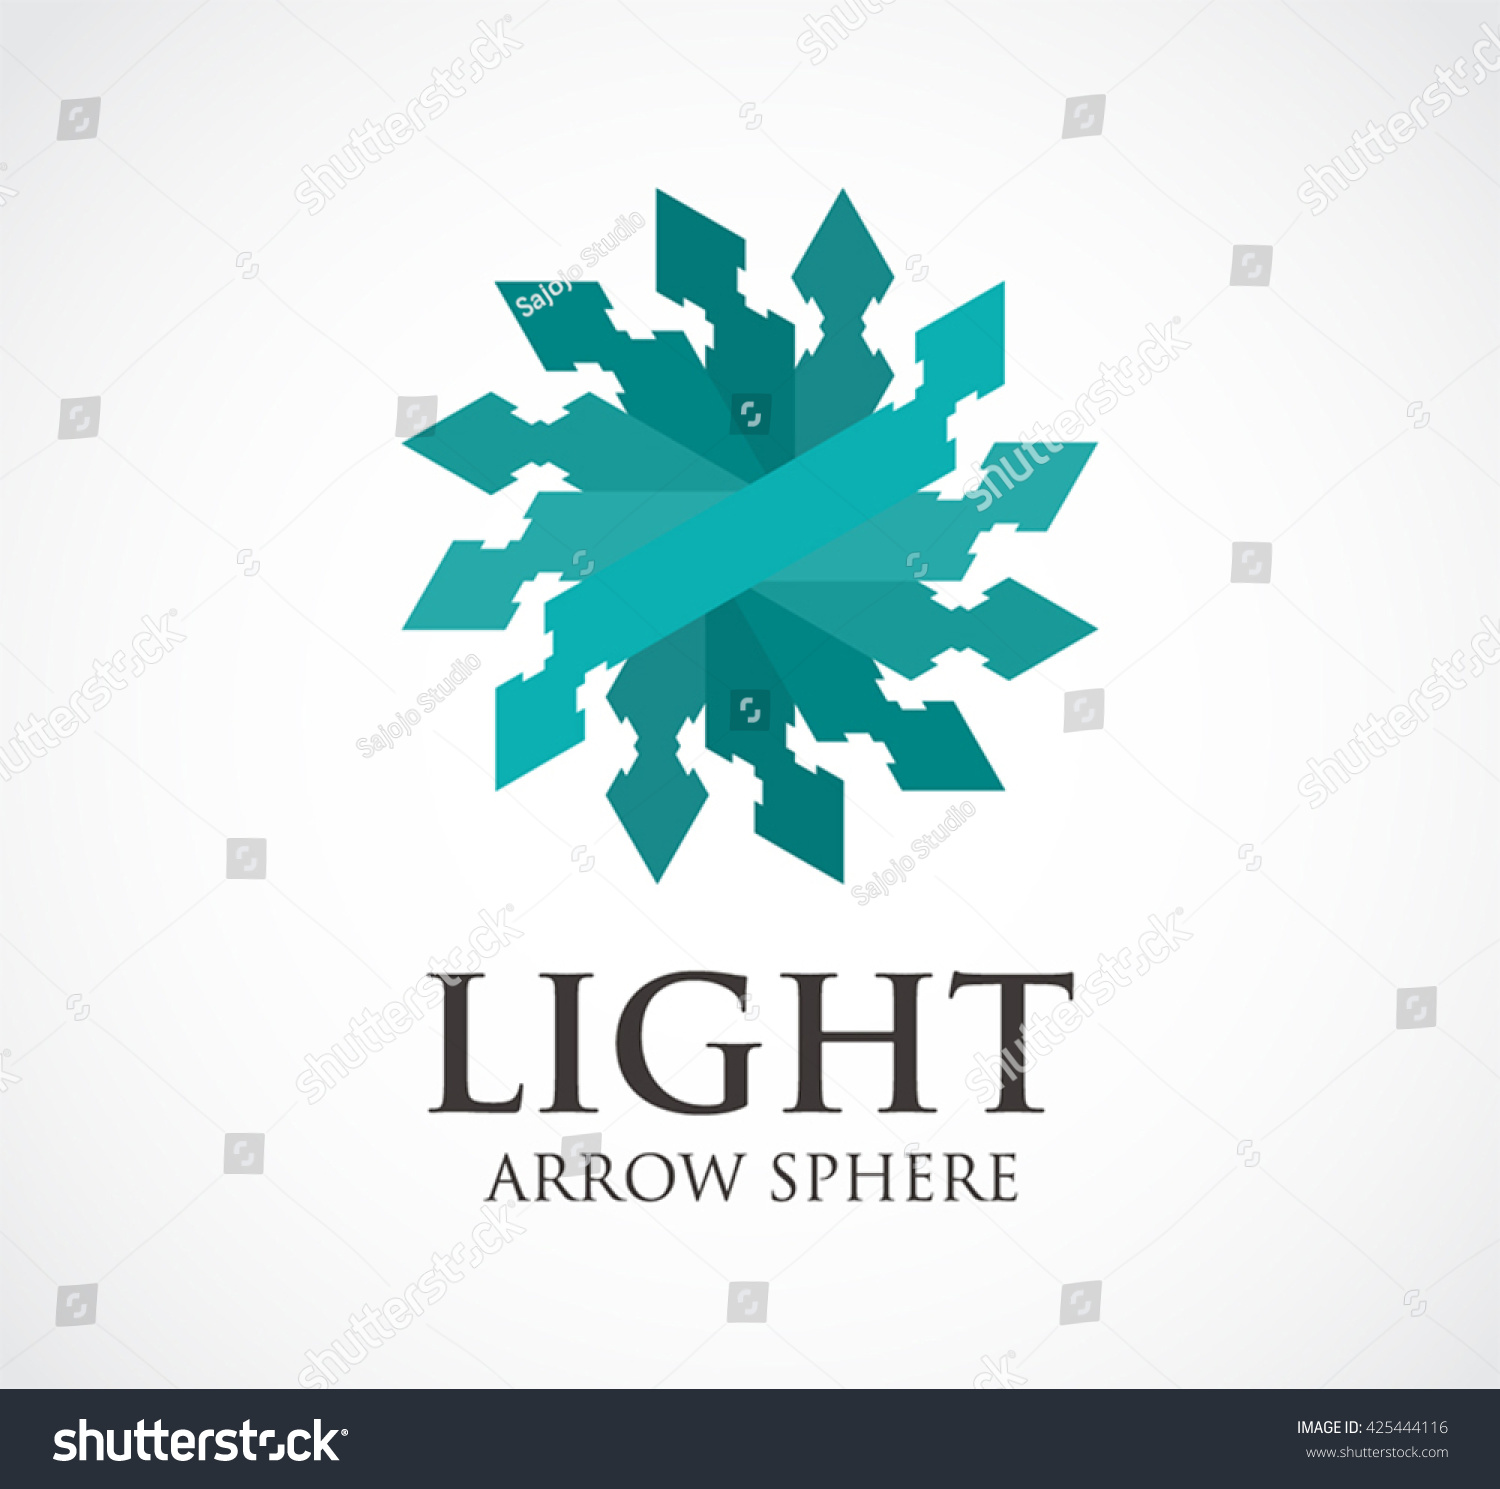 Light sphere arrow motion abstract vector stock vector 425444116 light sphere of arrow motion abstract vector and logo design or template circular business icon of buycottarizona Choice Image